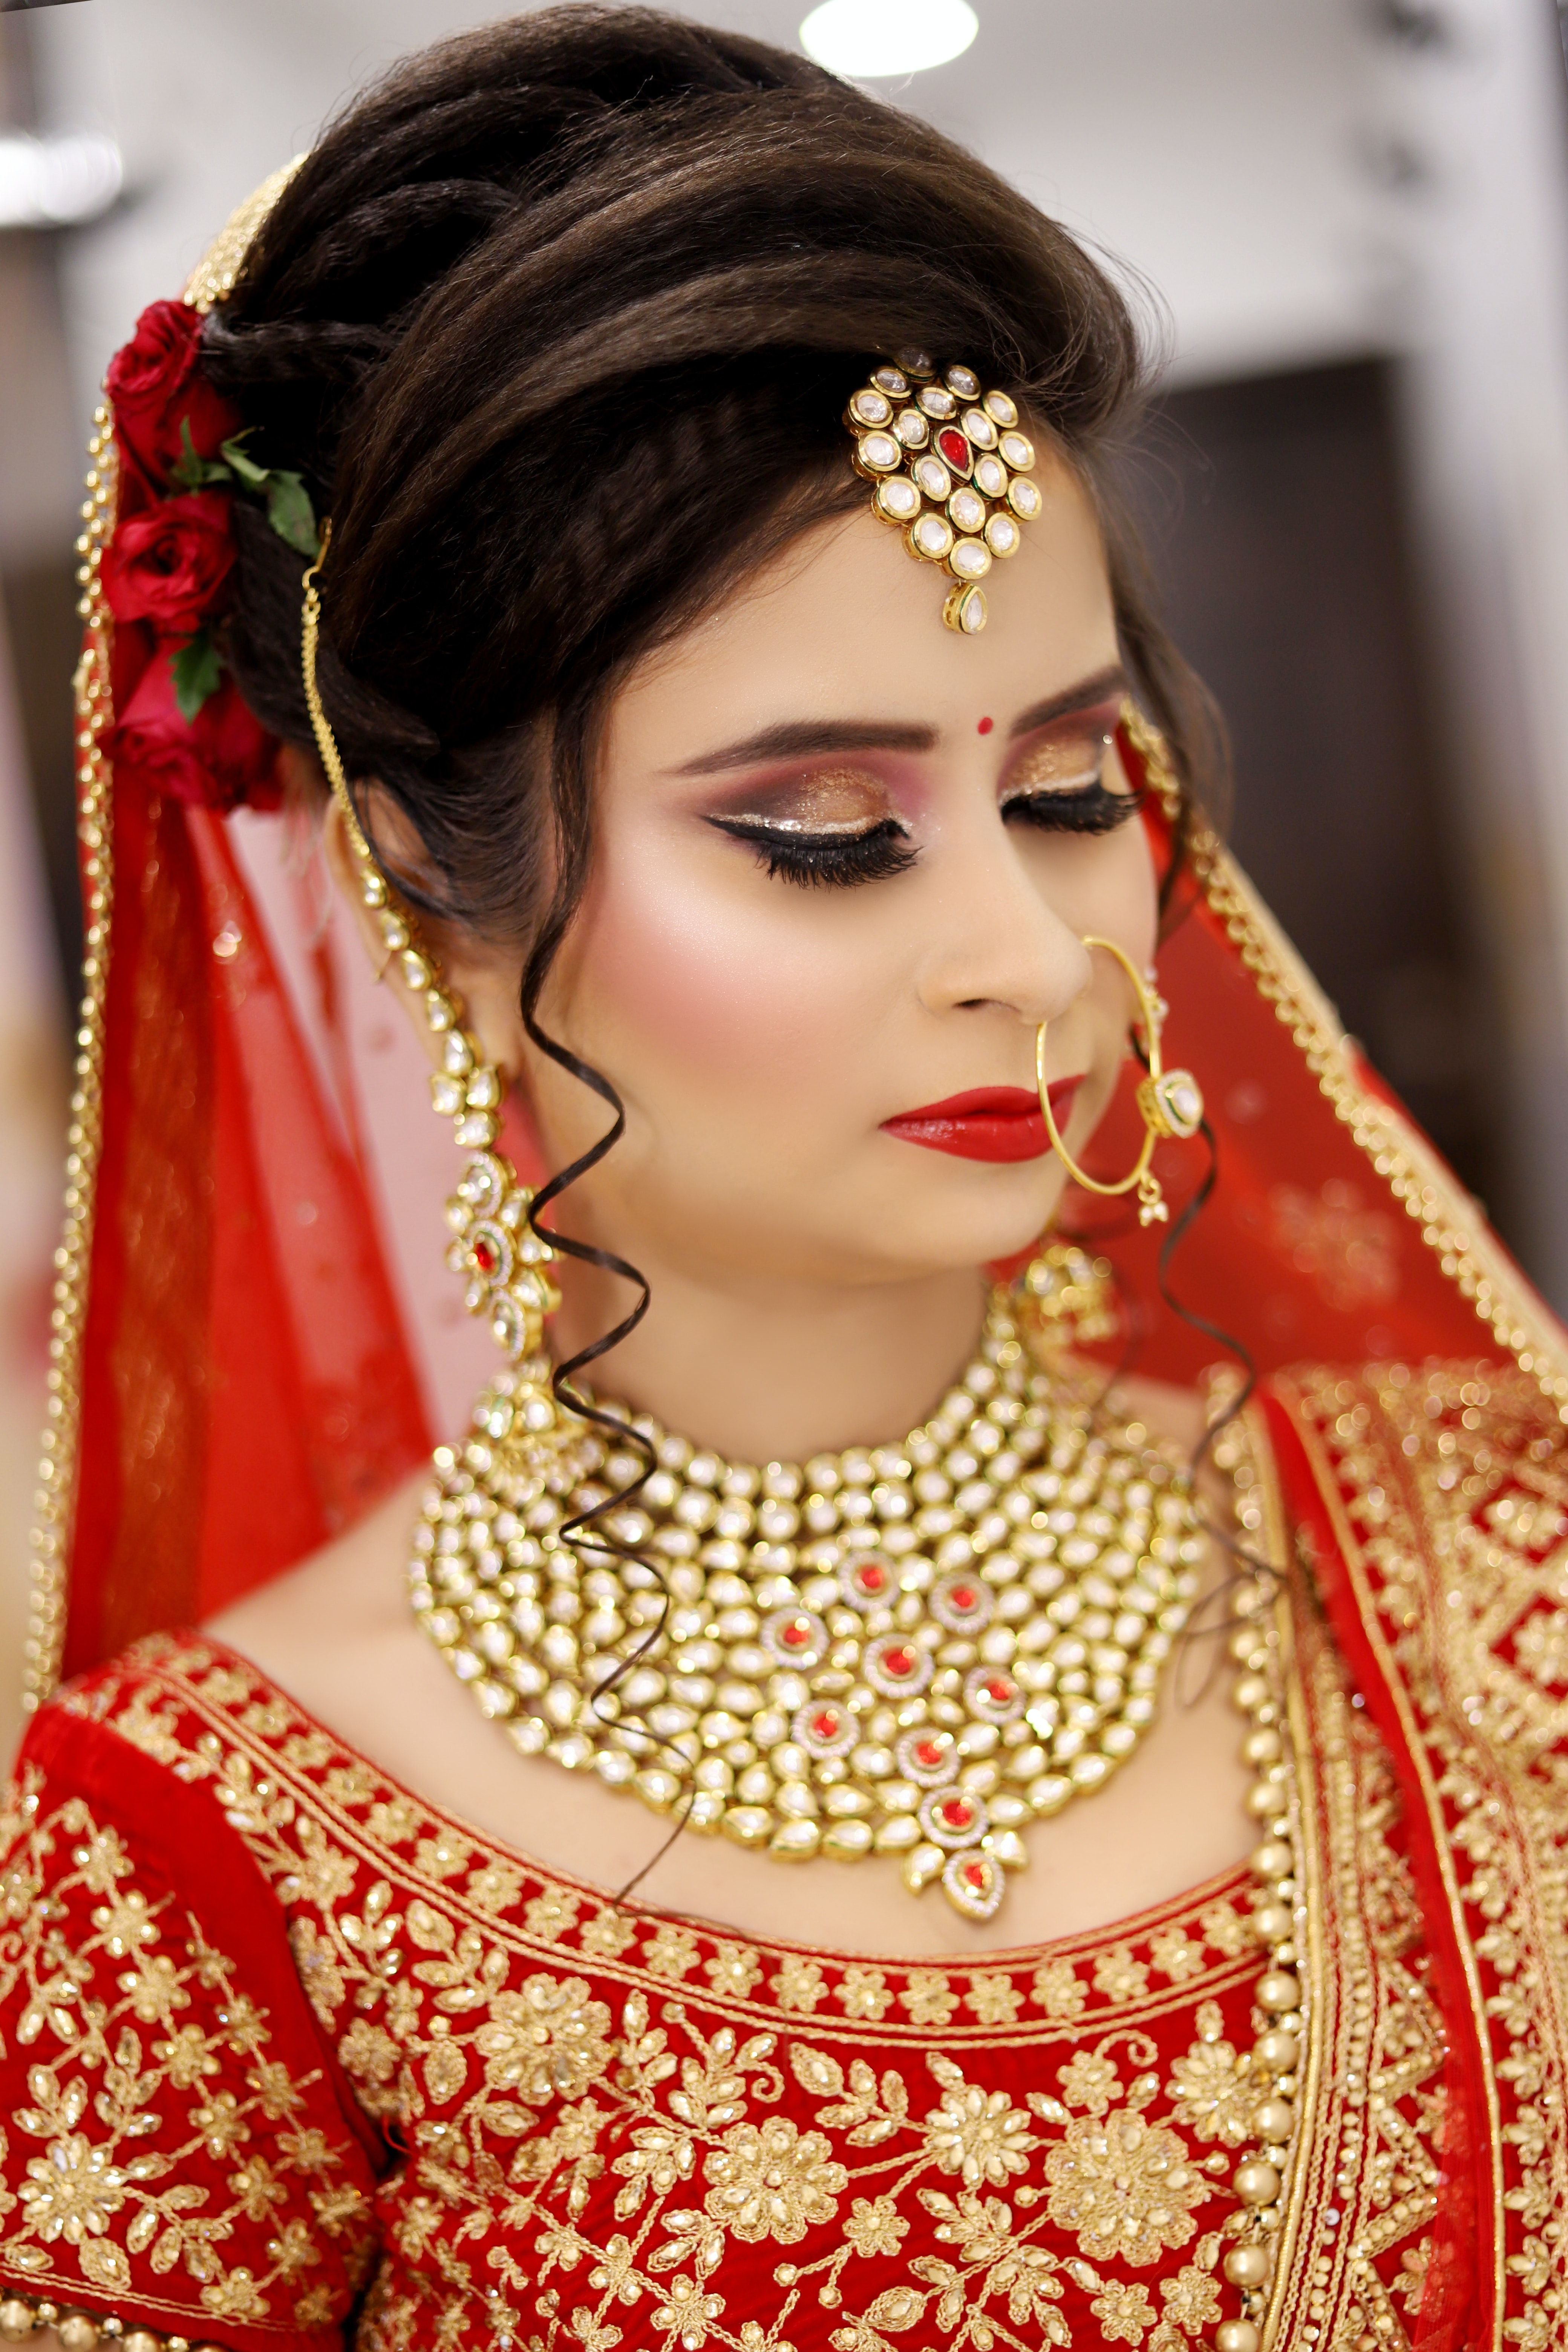 free stock photo of #wedding #bridal #makeup #beauty